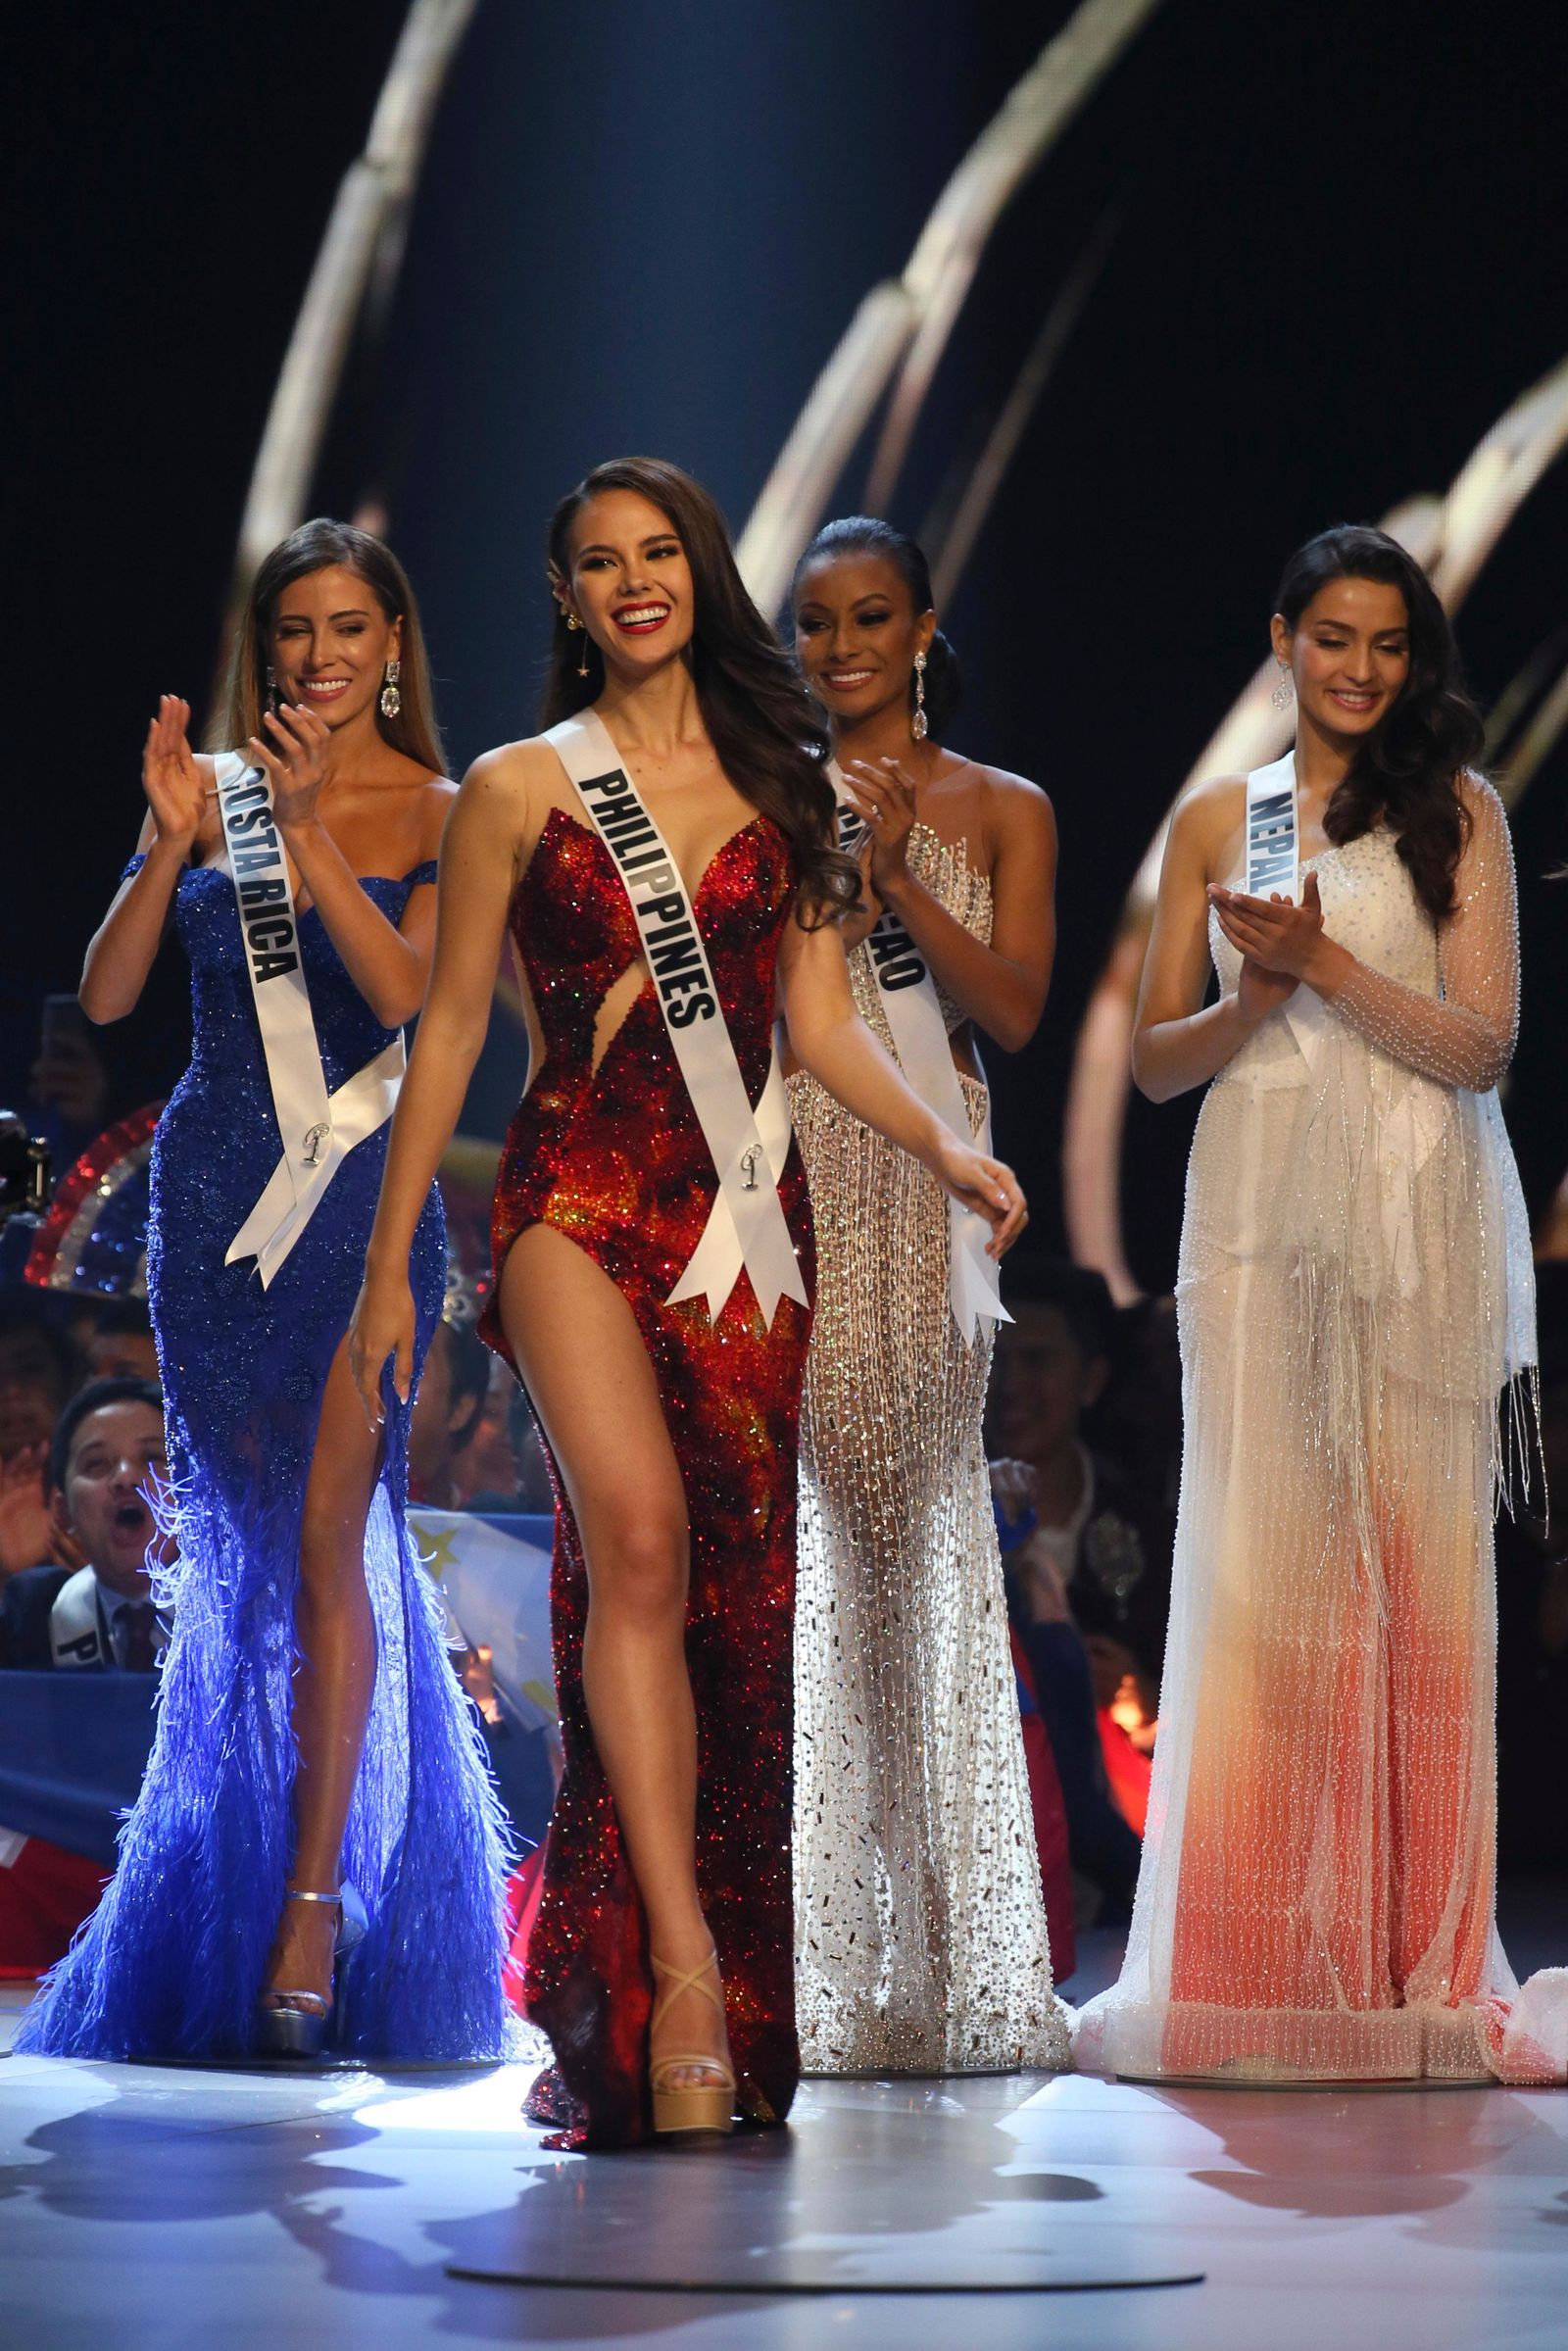 Miss Philippines Catriona Gray, second from left, walks on the stage during the final of 67th Miss Universe competition in Bangkok, Thailand, Monday, Dec. 17, 2018.(AP Photo/Gemunu Amarasinghe)